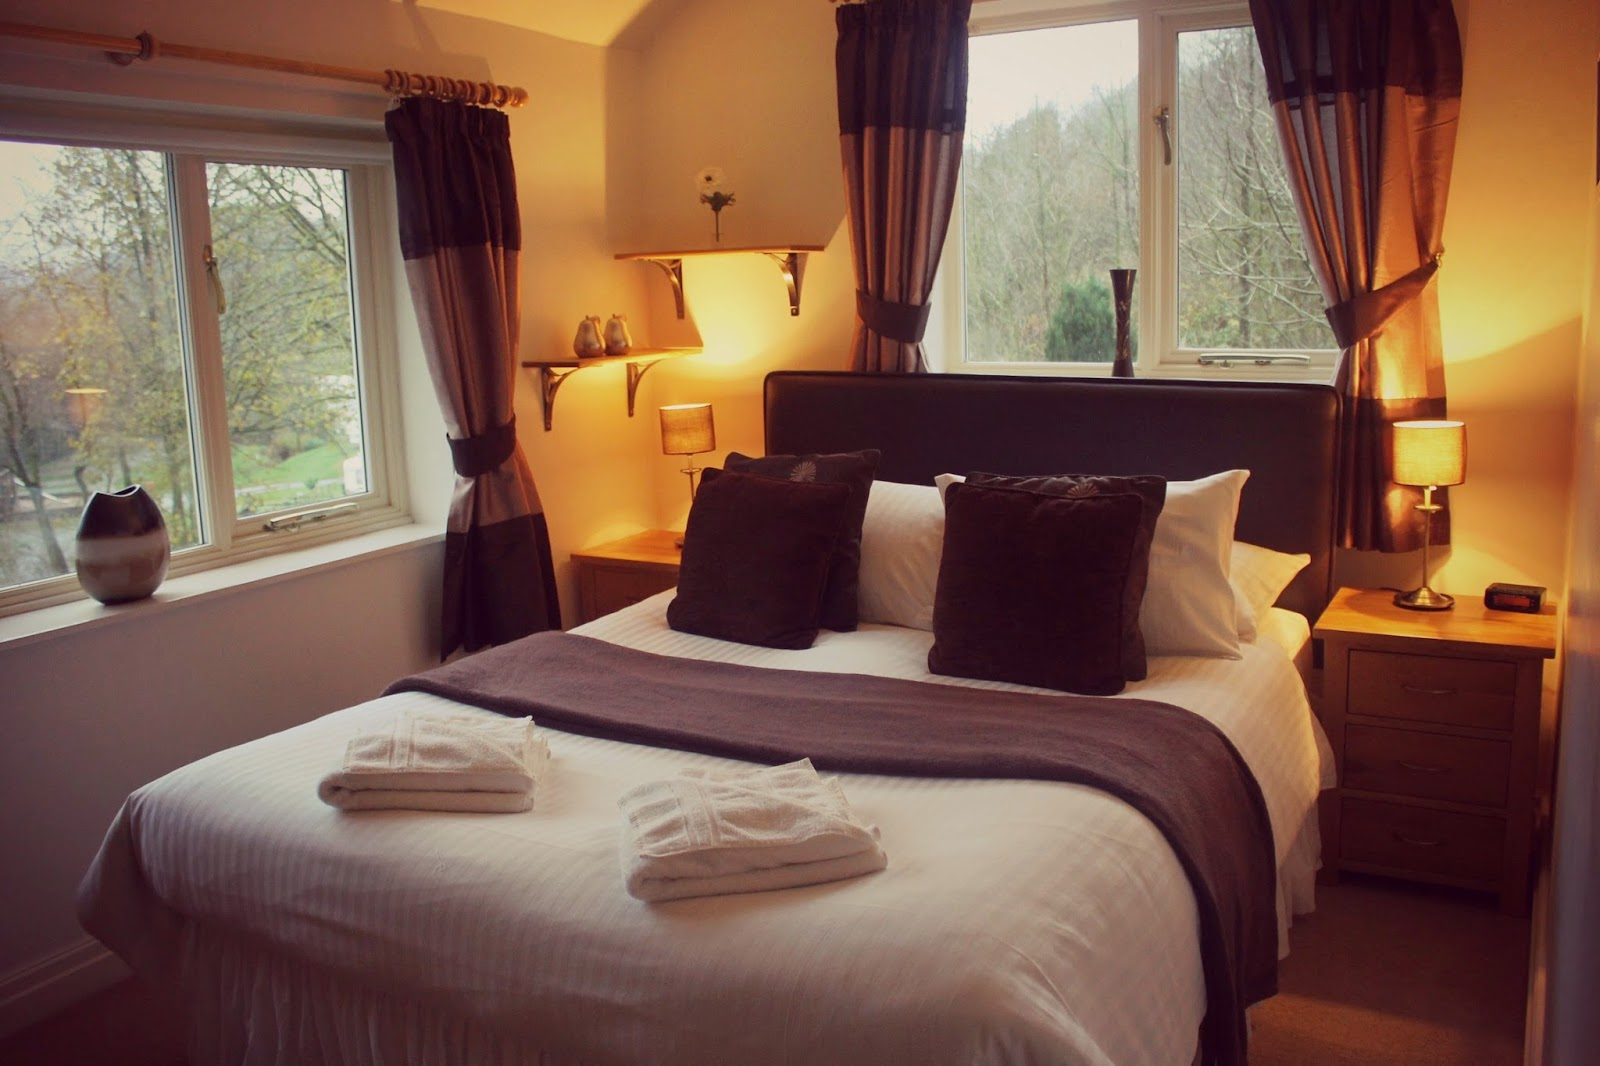 rent holiday home in osmotherley